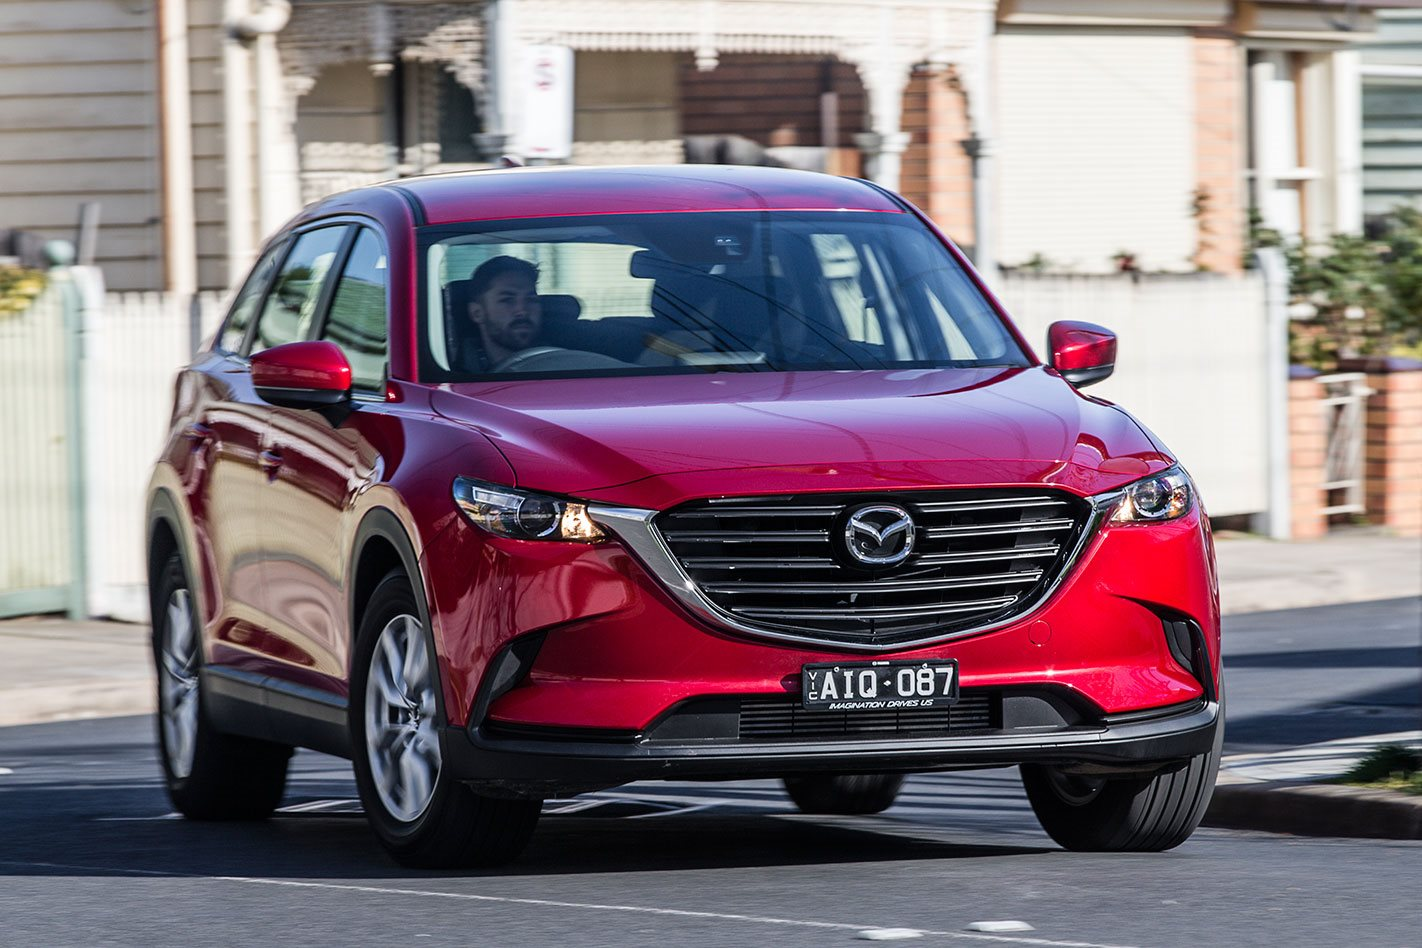 2018 mazda cx 9 range review live prices and updates whichcar. Black Bedroom Furniture Sets. Home Design Ideas